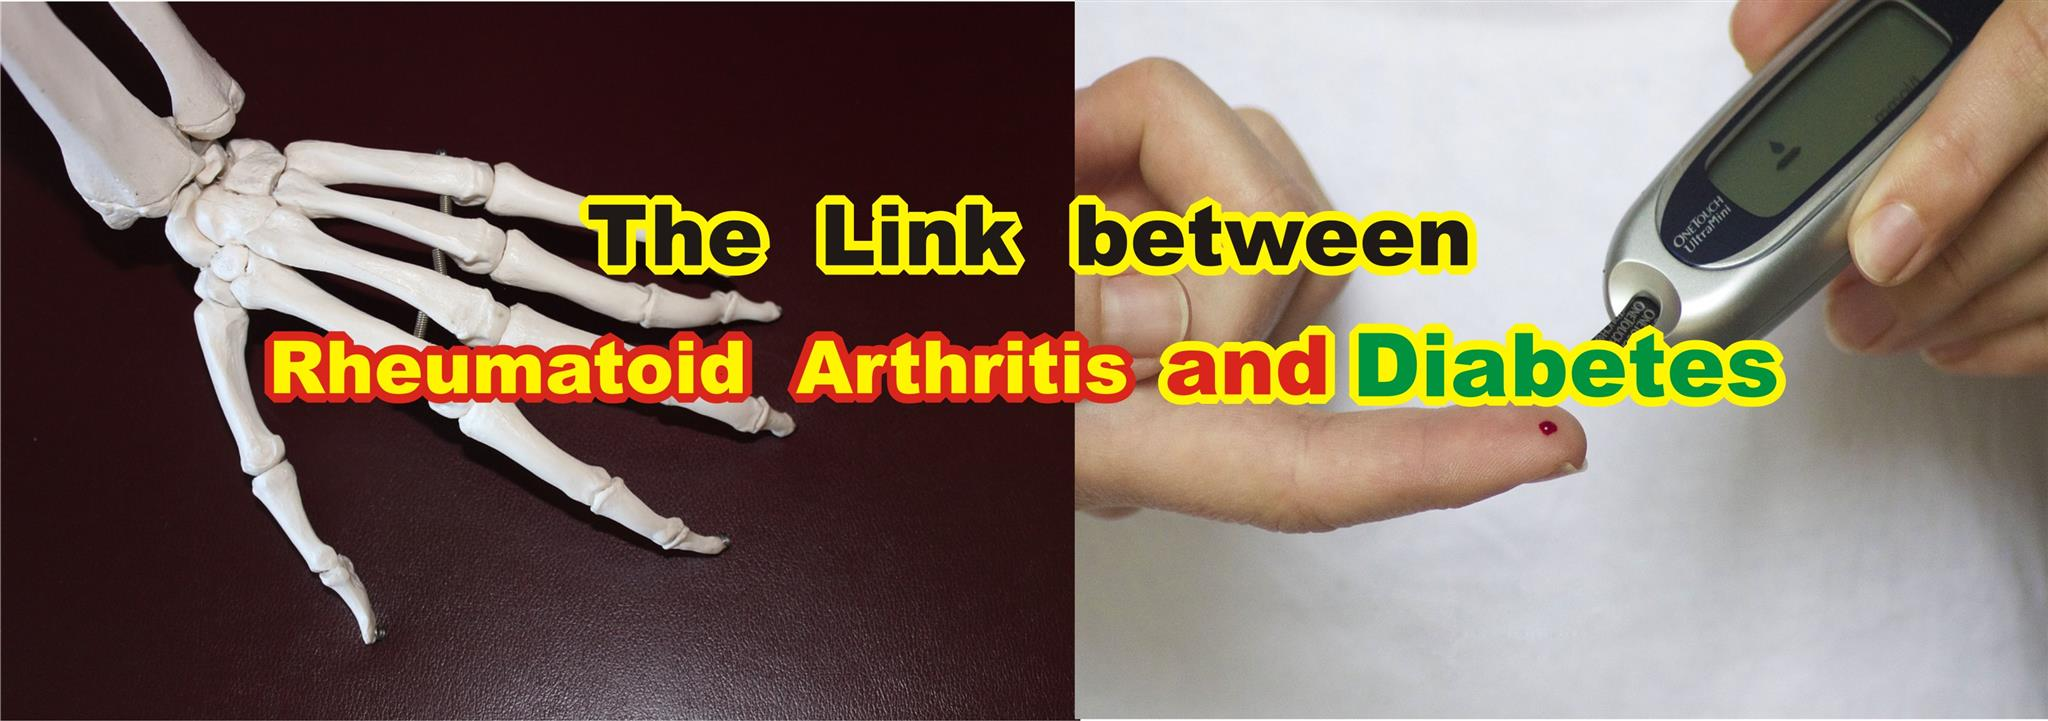 The Link between Rheumatoid Arthritis and Diabetes